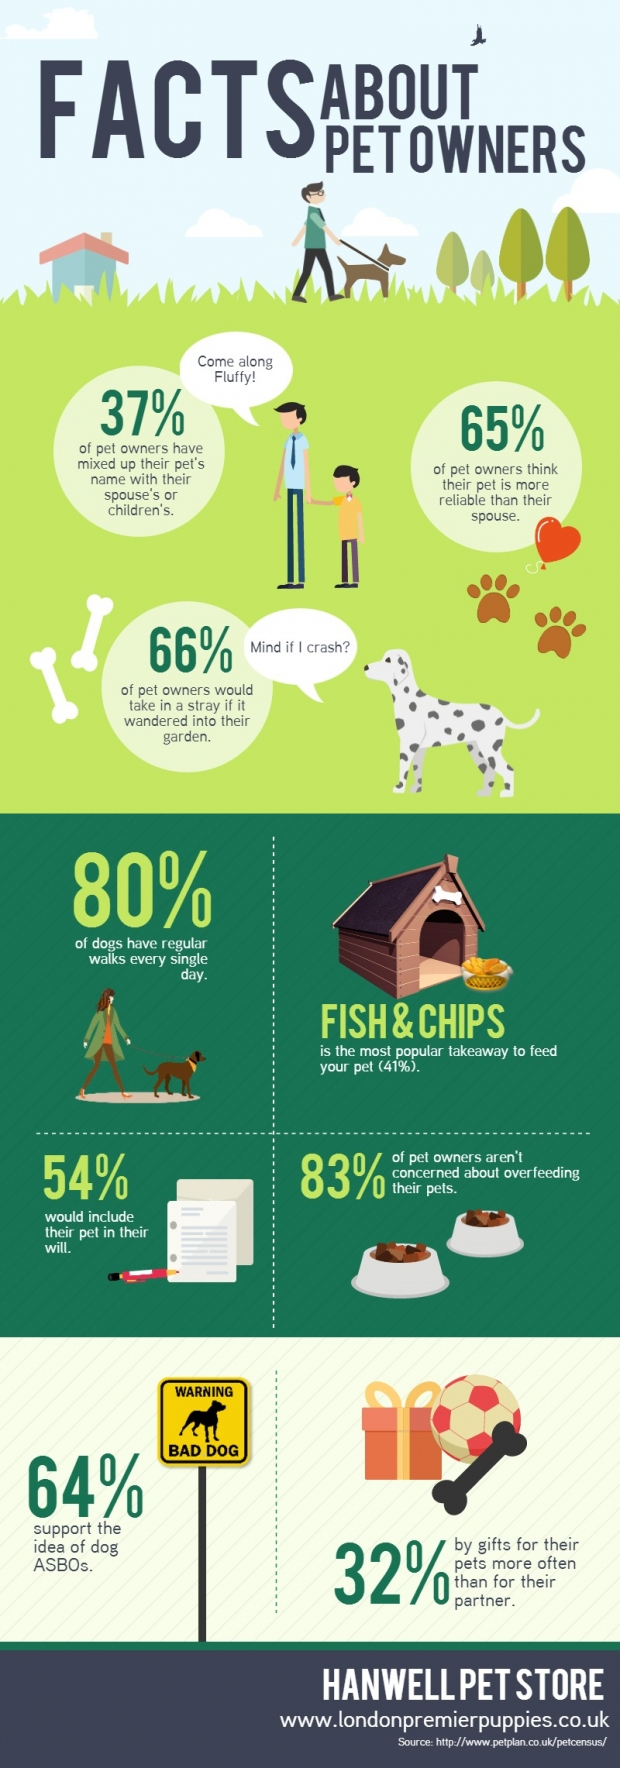 Facts-About-Pet-Owners